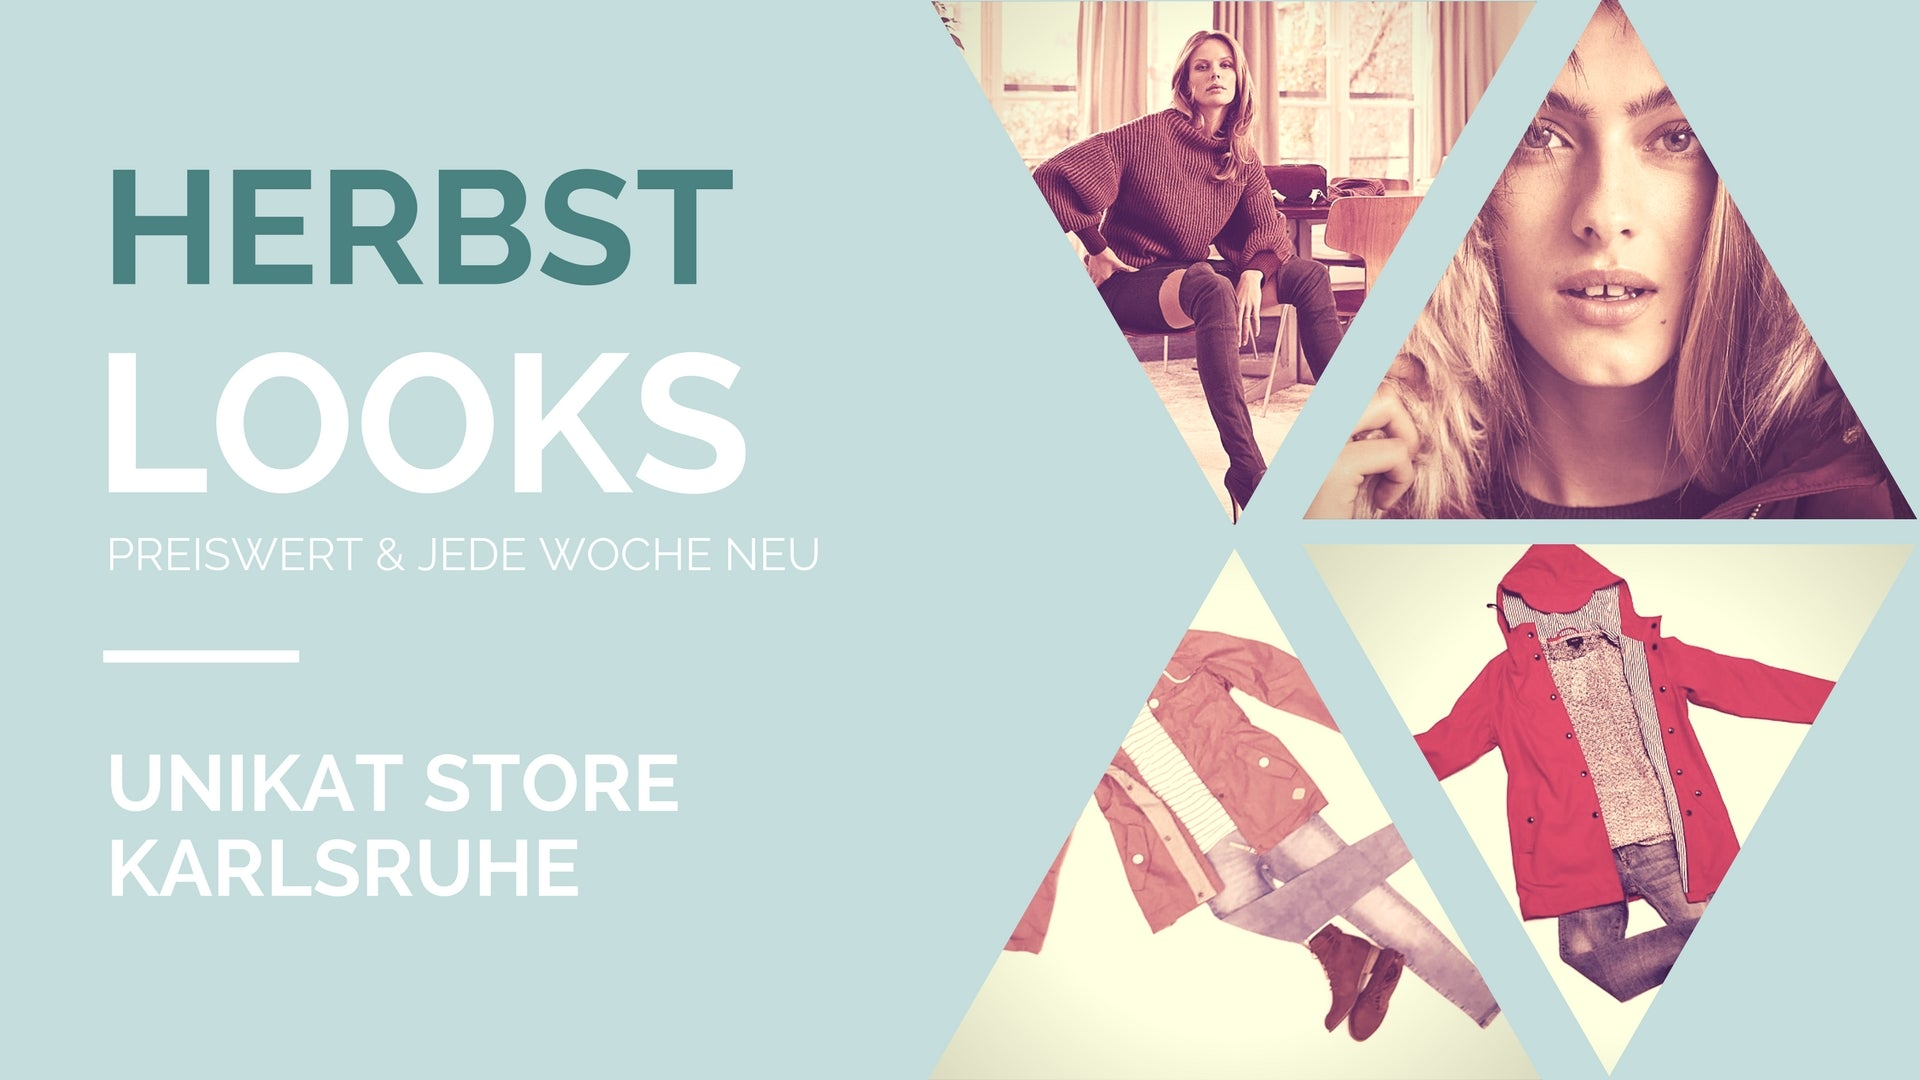 UNiKAT Store Karlsruhe > Winter Mode Trends 2017